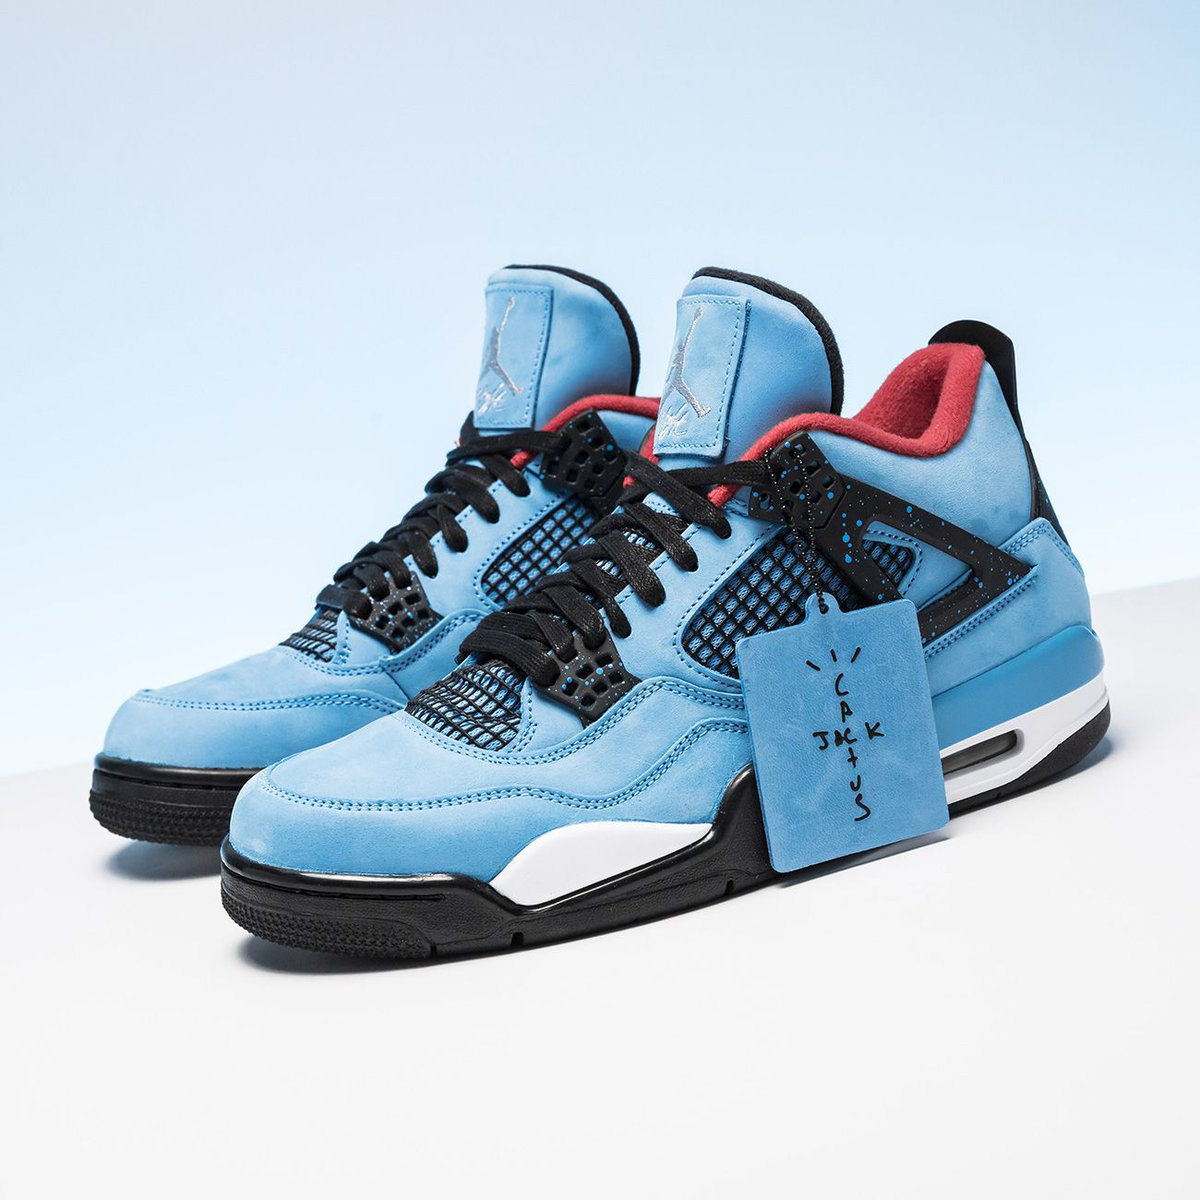 1285c3879 ... Nike—a muted take on the AJ4 in a colorway that referenced his hometown  Houston Oilers—is still as fresh as ever. http   bit.ly 2EgIntc pic.twitter.com   ...